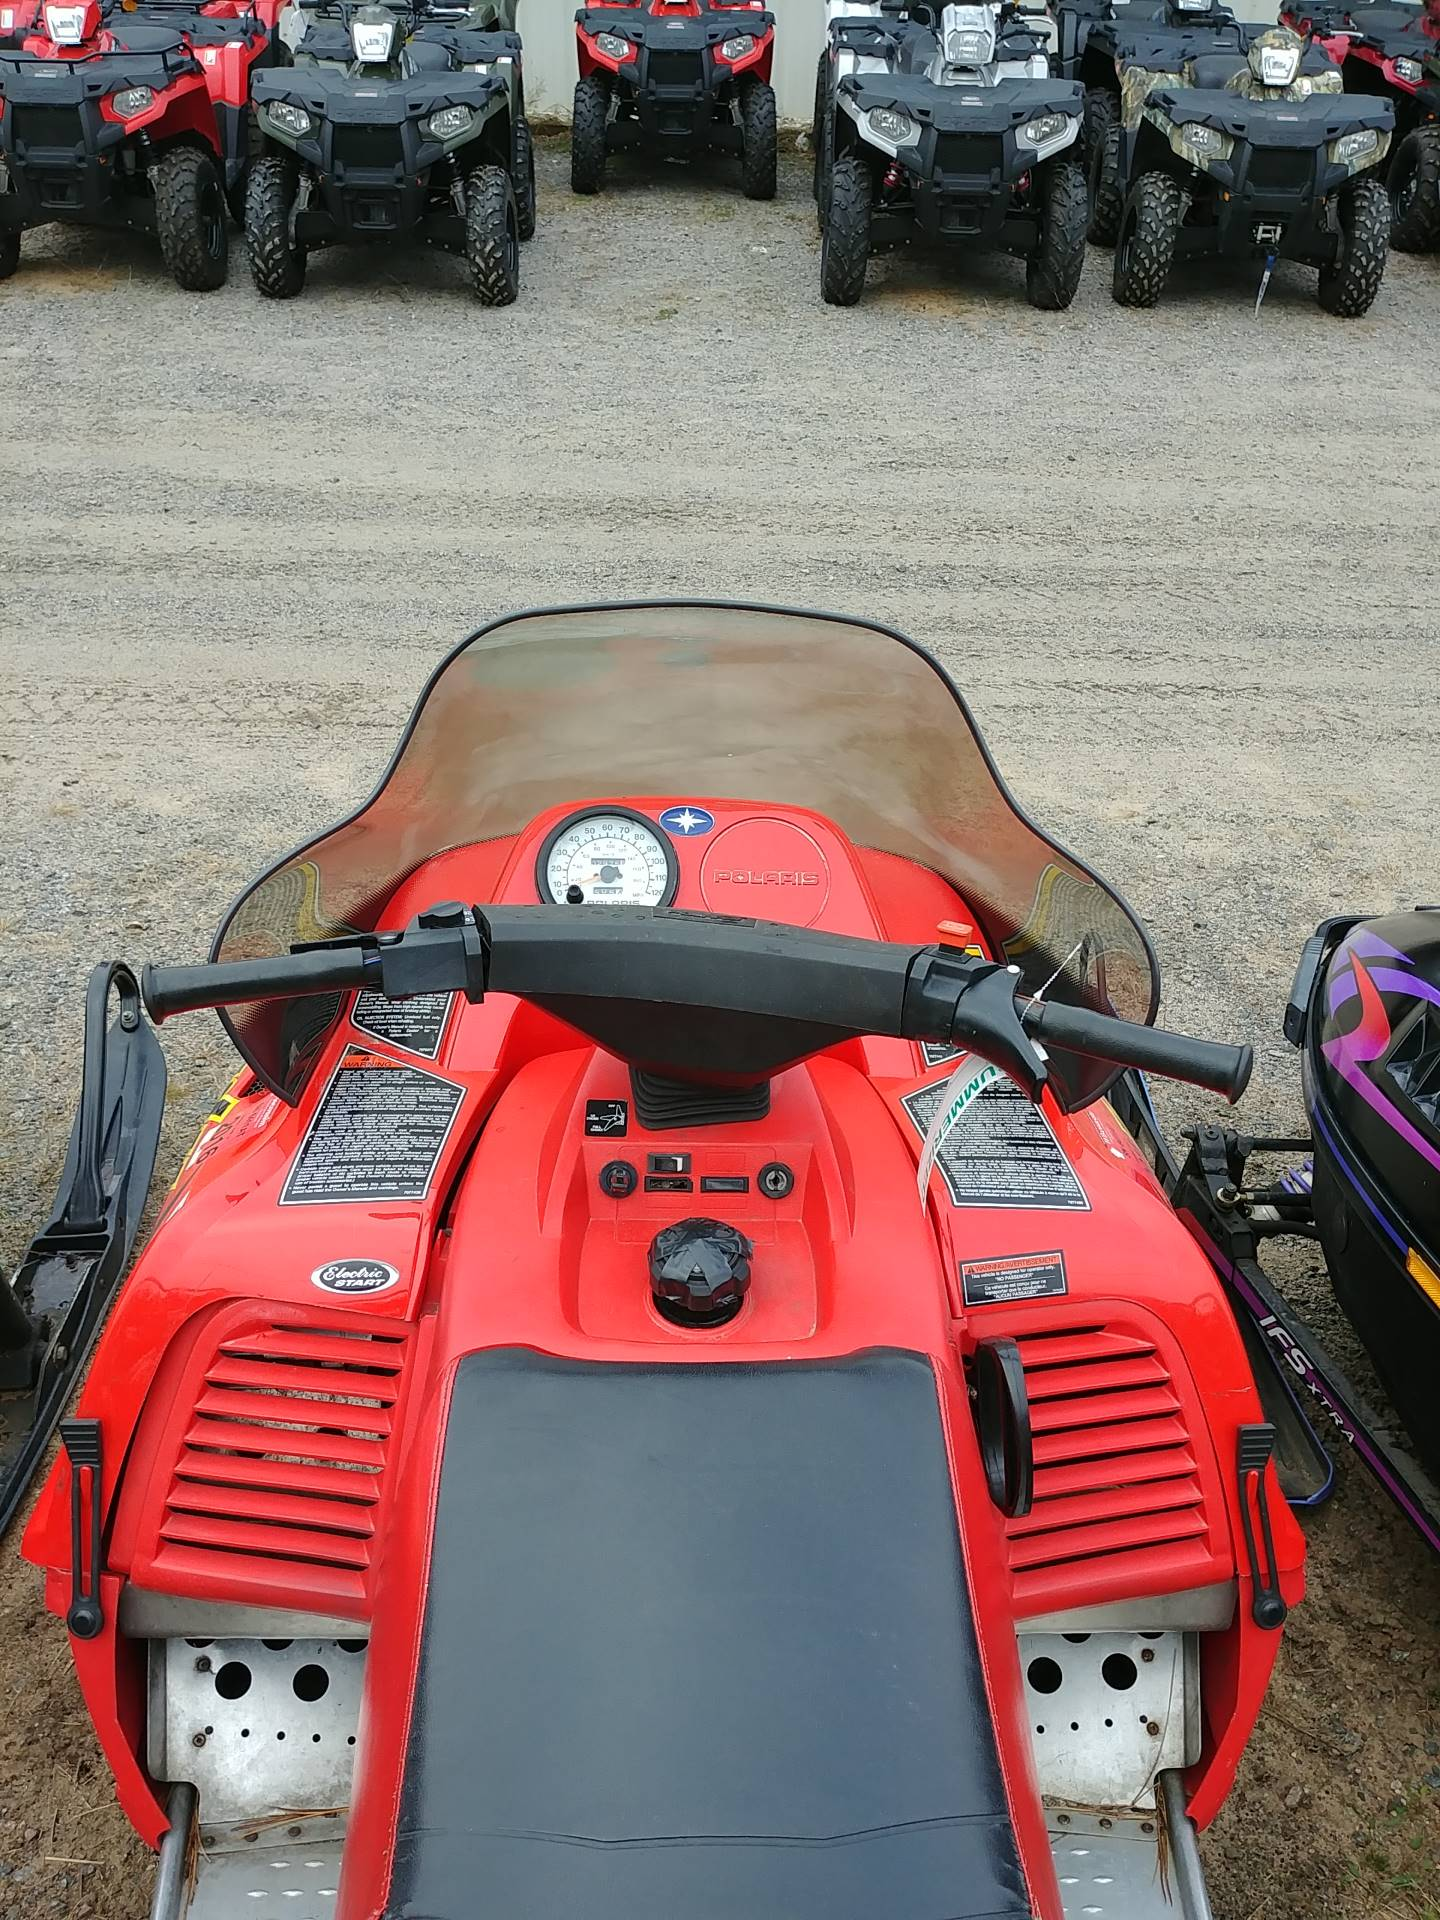 2002 Polaris Indy 340 Deluxe in Wisconsin Rapids, Wisconsin